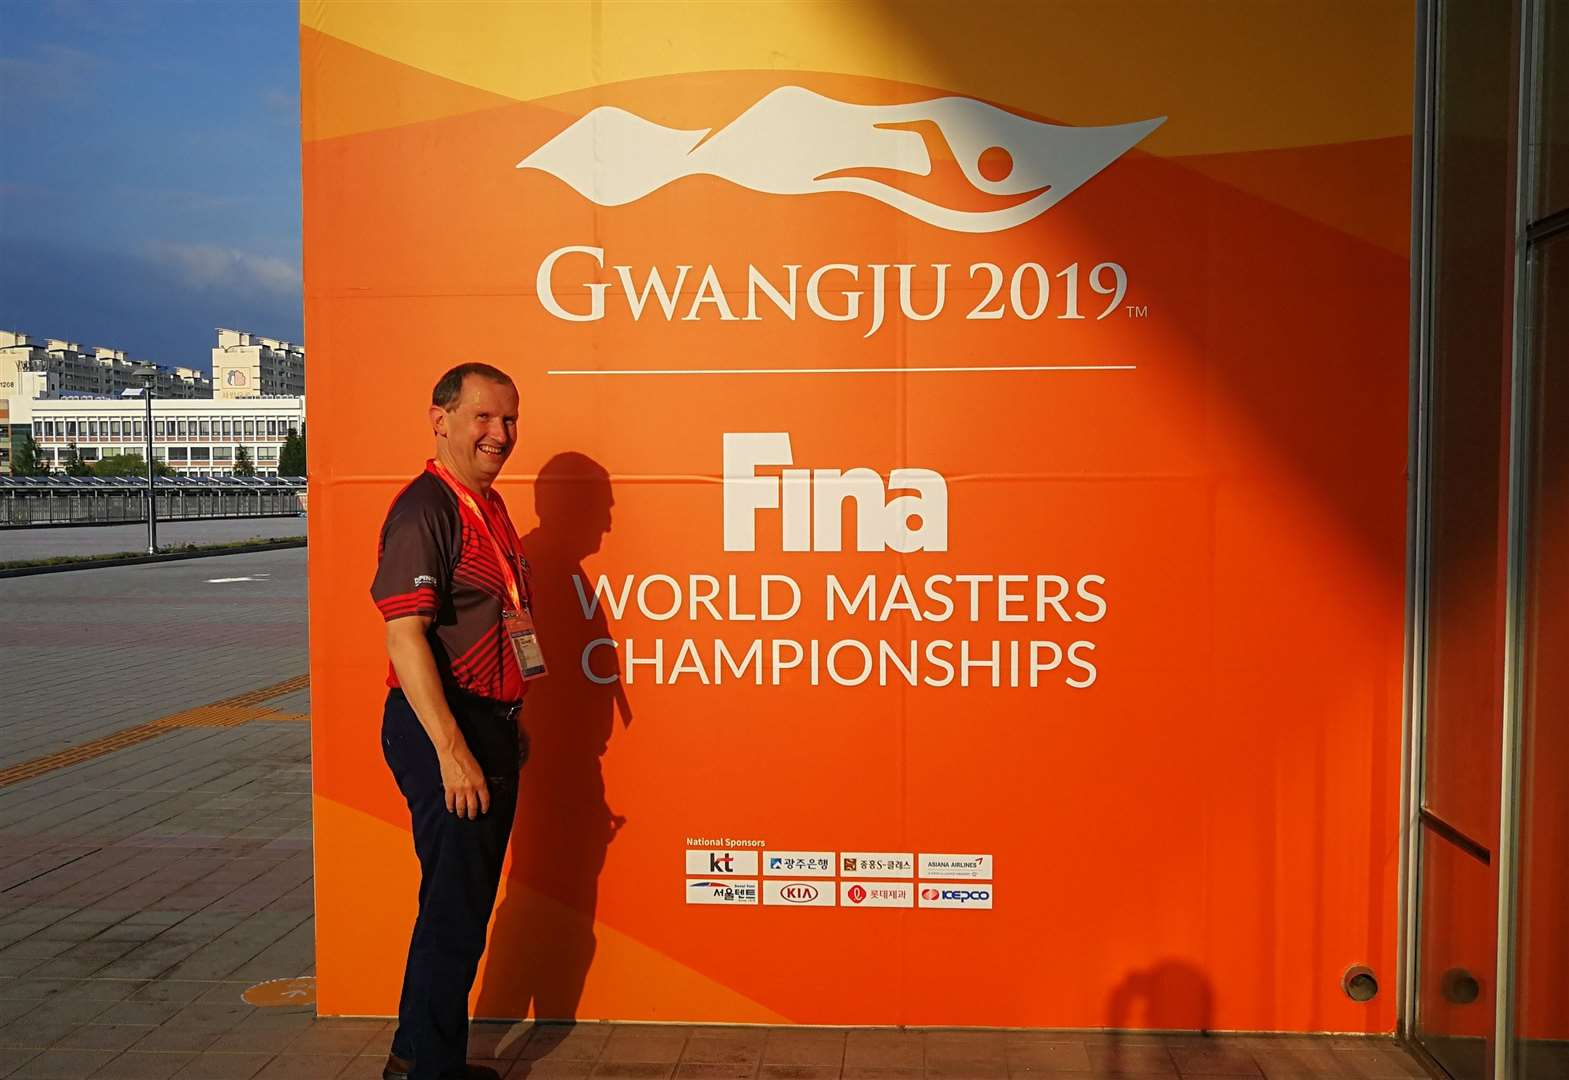 Chris competes against the world's best in masters finals